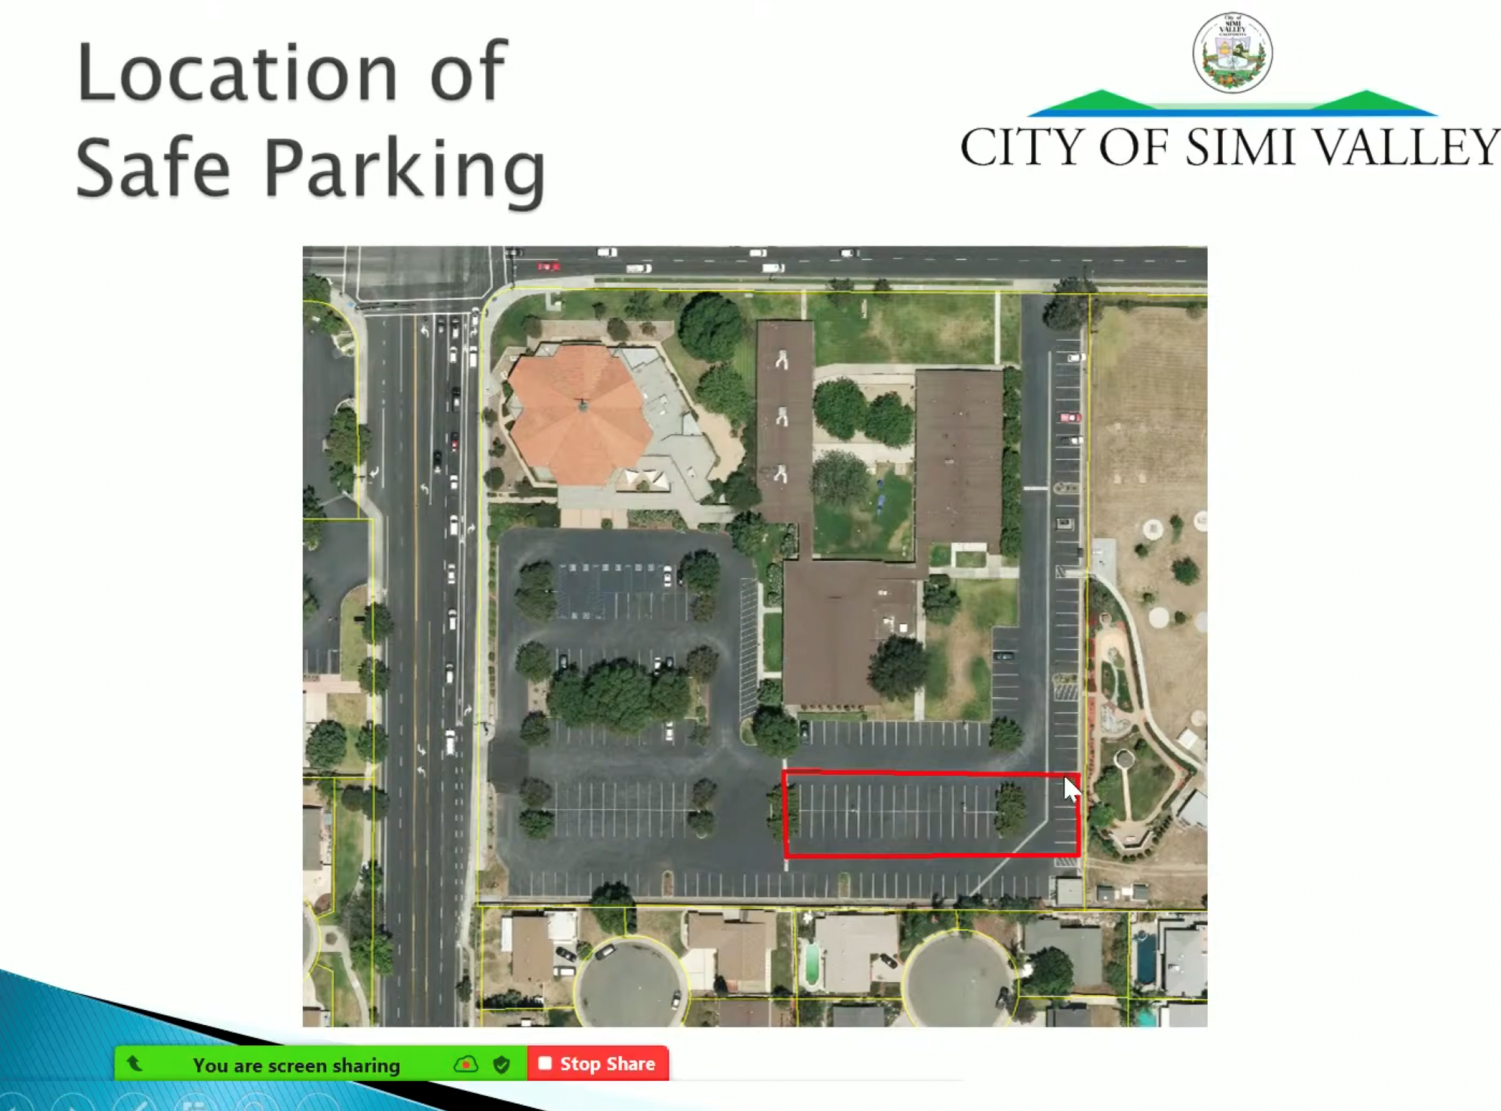 A slide during the City council meeting on Nov. 9, shows where the safe parking will take place.